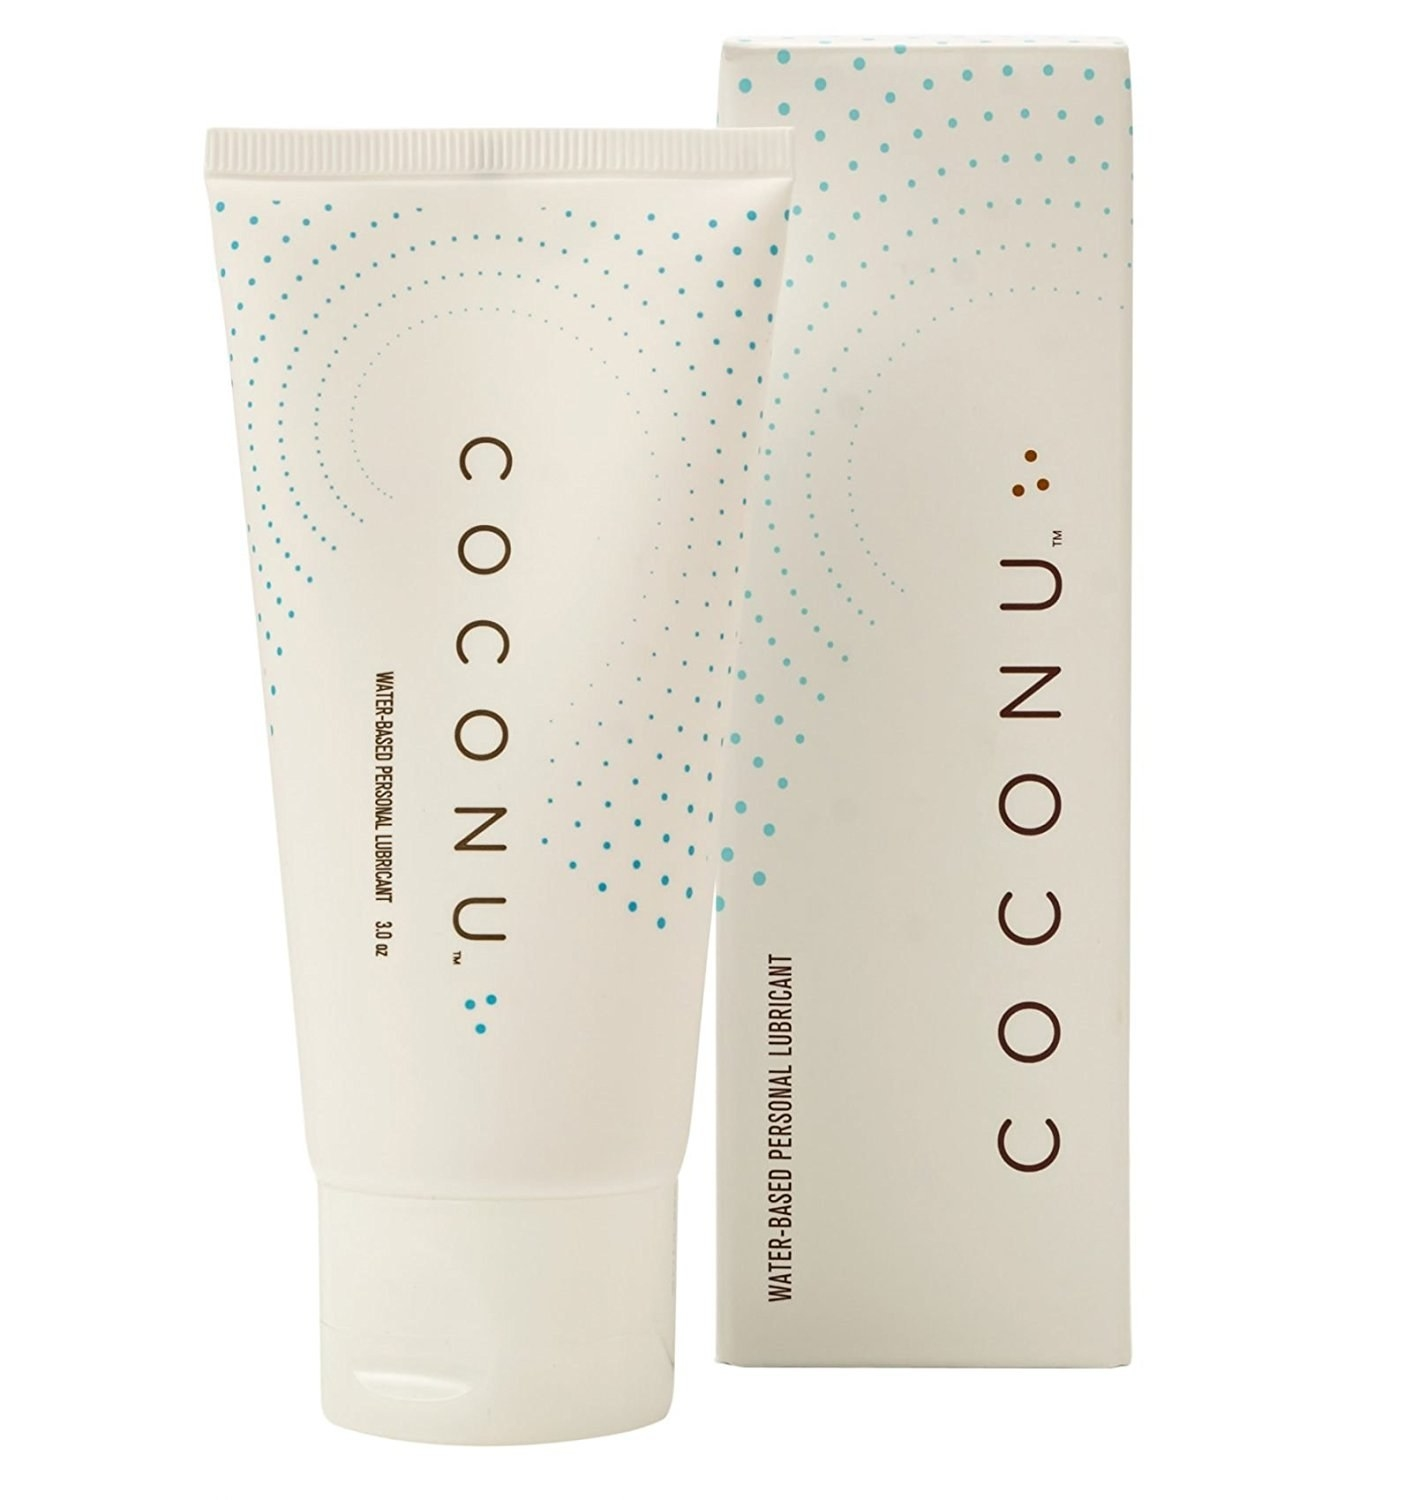 """Promising review: """"Very nice and worth the price. It has a nice, slick feel, yet still allows for just enough friction. It lasts a long time and does not leave you feeling greasy later (unlike plain coconut oil). It has a pleasant, subtle scent. A little goes a long way, my husband and I both enjoyed. It's so much better for you than the non-organic alternatives."""" —Amazon Customer Price: $17.99 (also available in an oil-based formula)."""